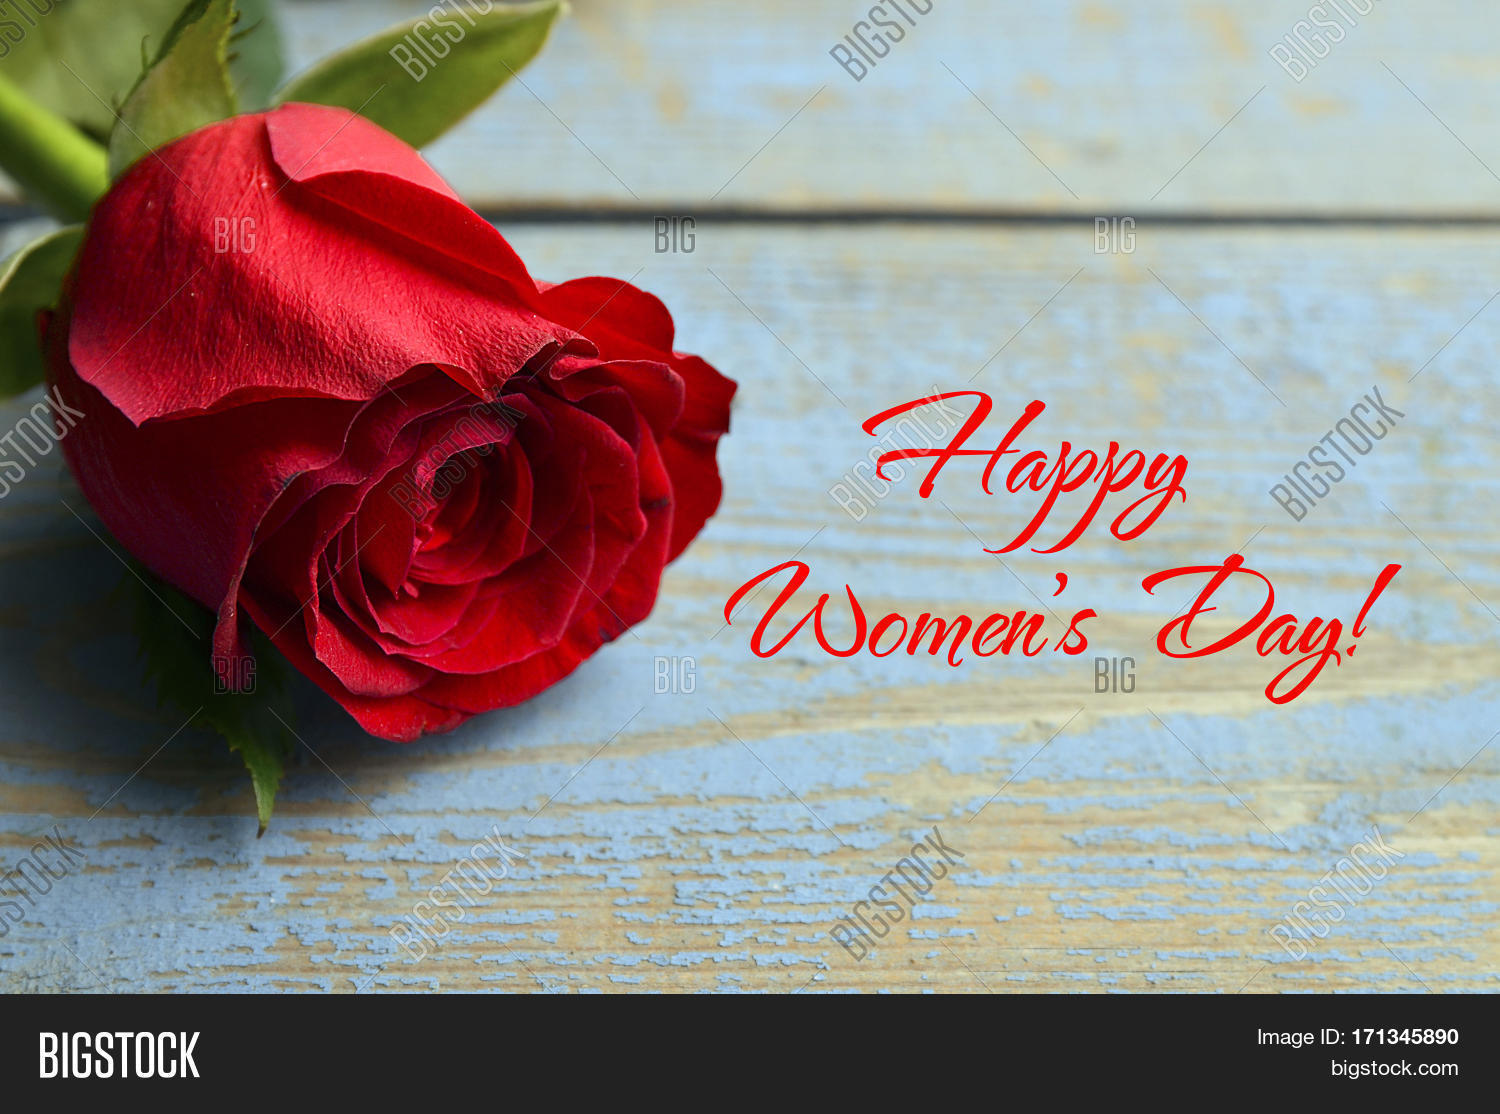 happy womens day rose on a blue old wooden background for women 39 s day international womens day. Black Bedroom Furniture Sets. Home Design Ideas